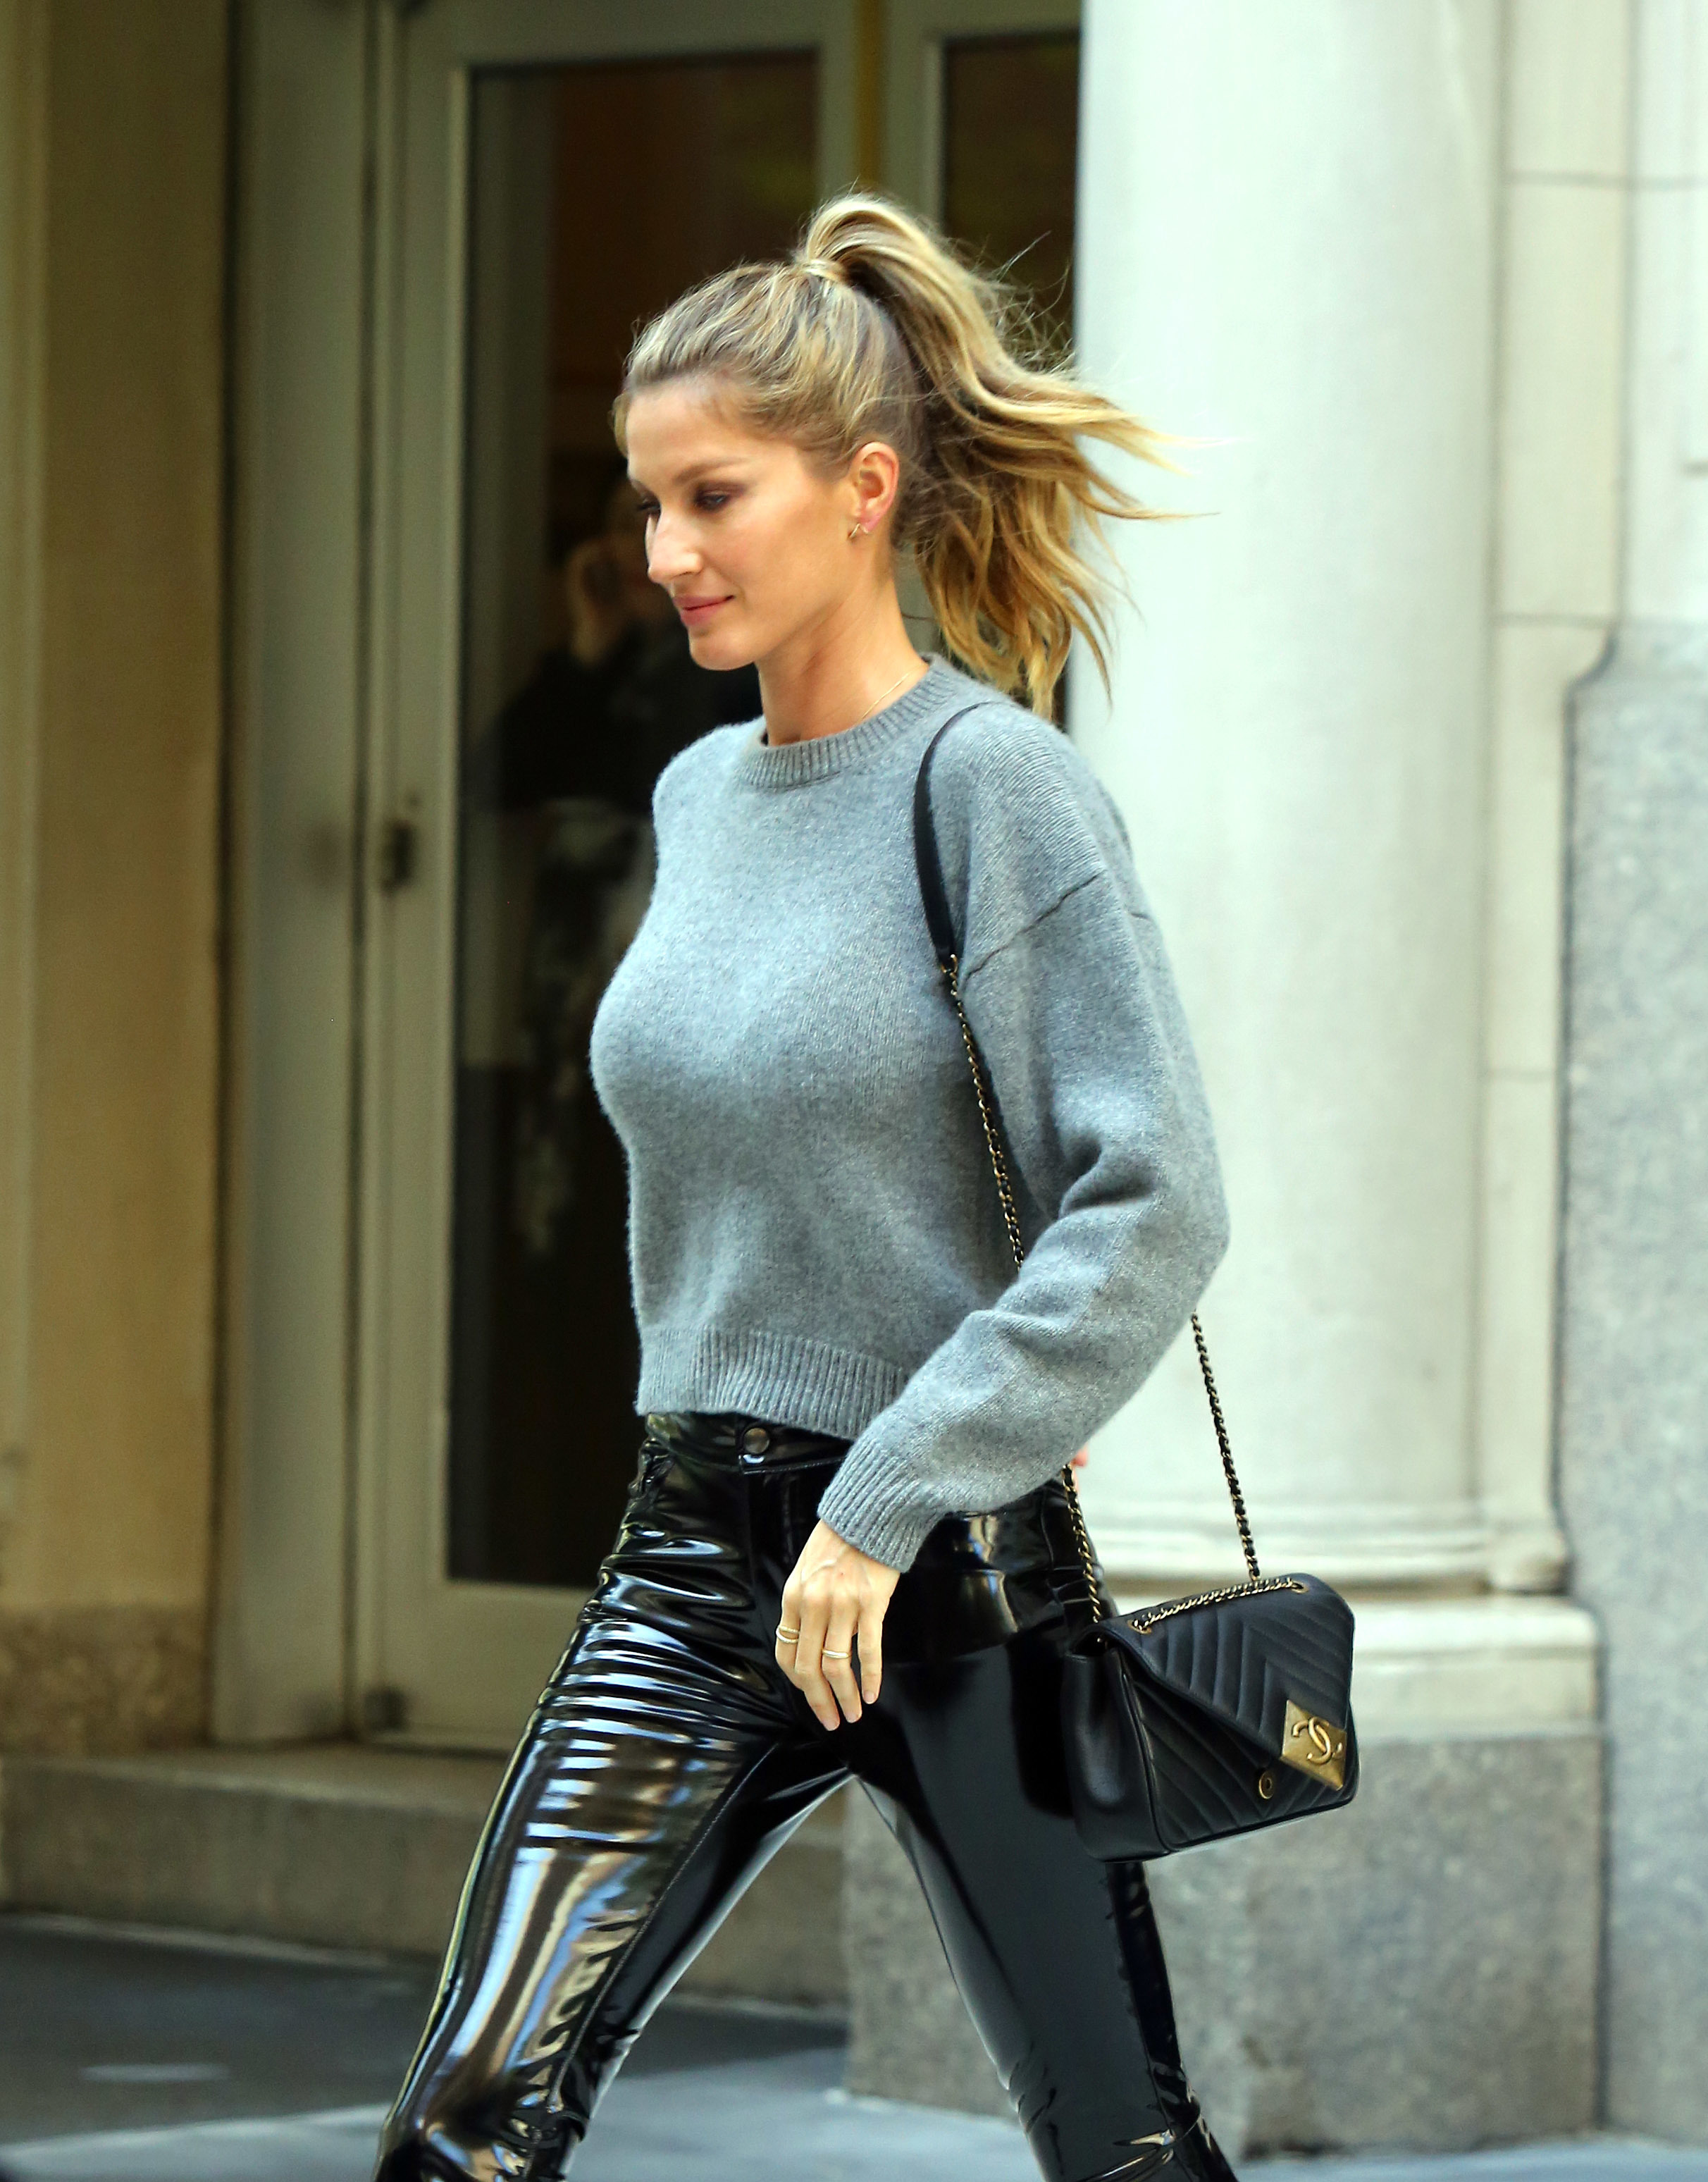 Gisele Bundchen is seen out and about in New York City on April 27, 2016.